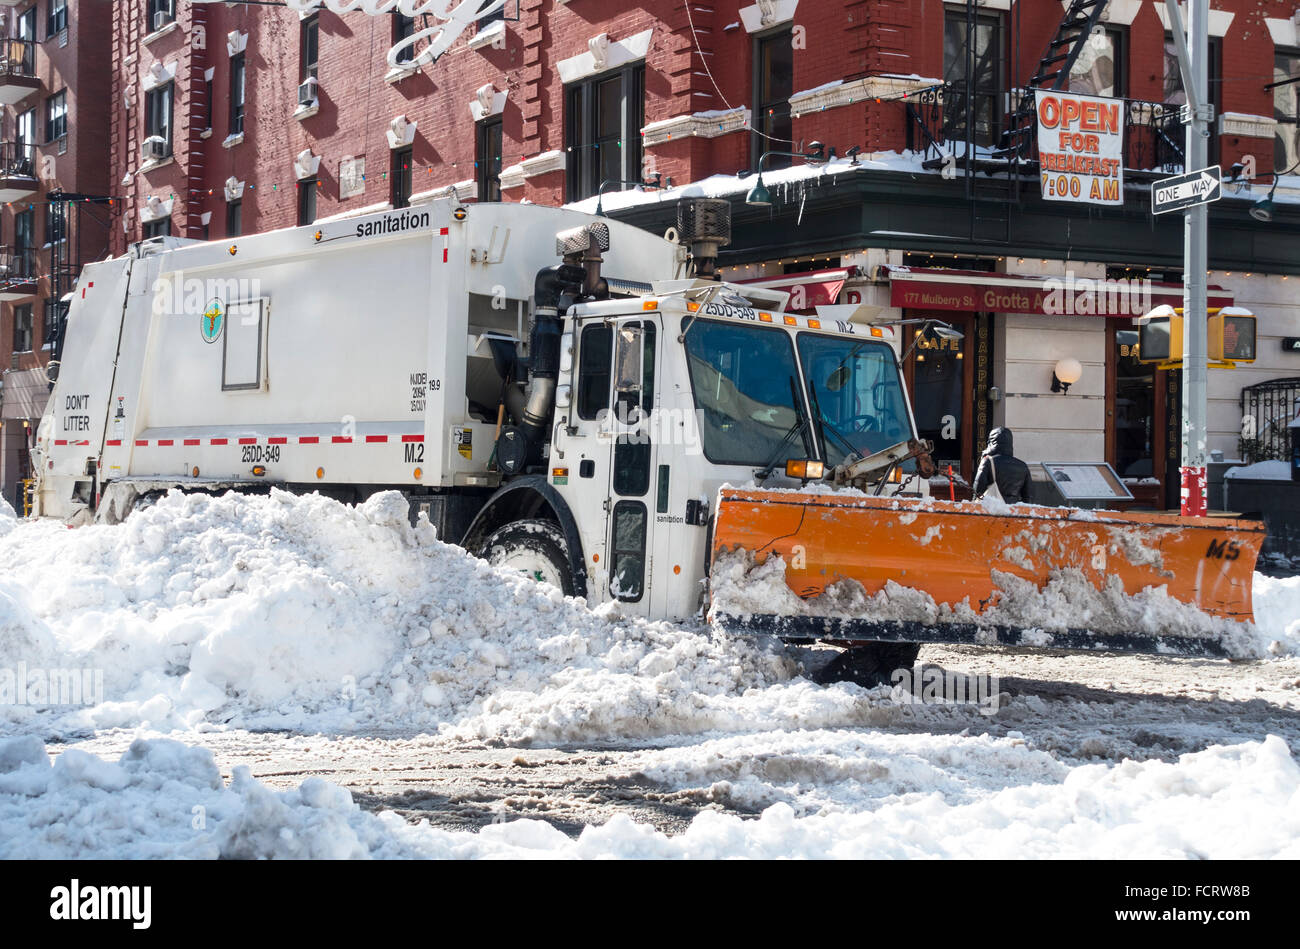 Snowplow cleaning up after 2016 Winter Storm Jonas in Lower Manhattan, NYC - Stock Image